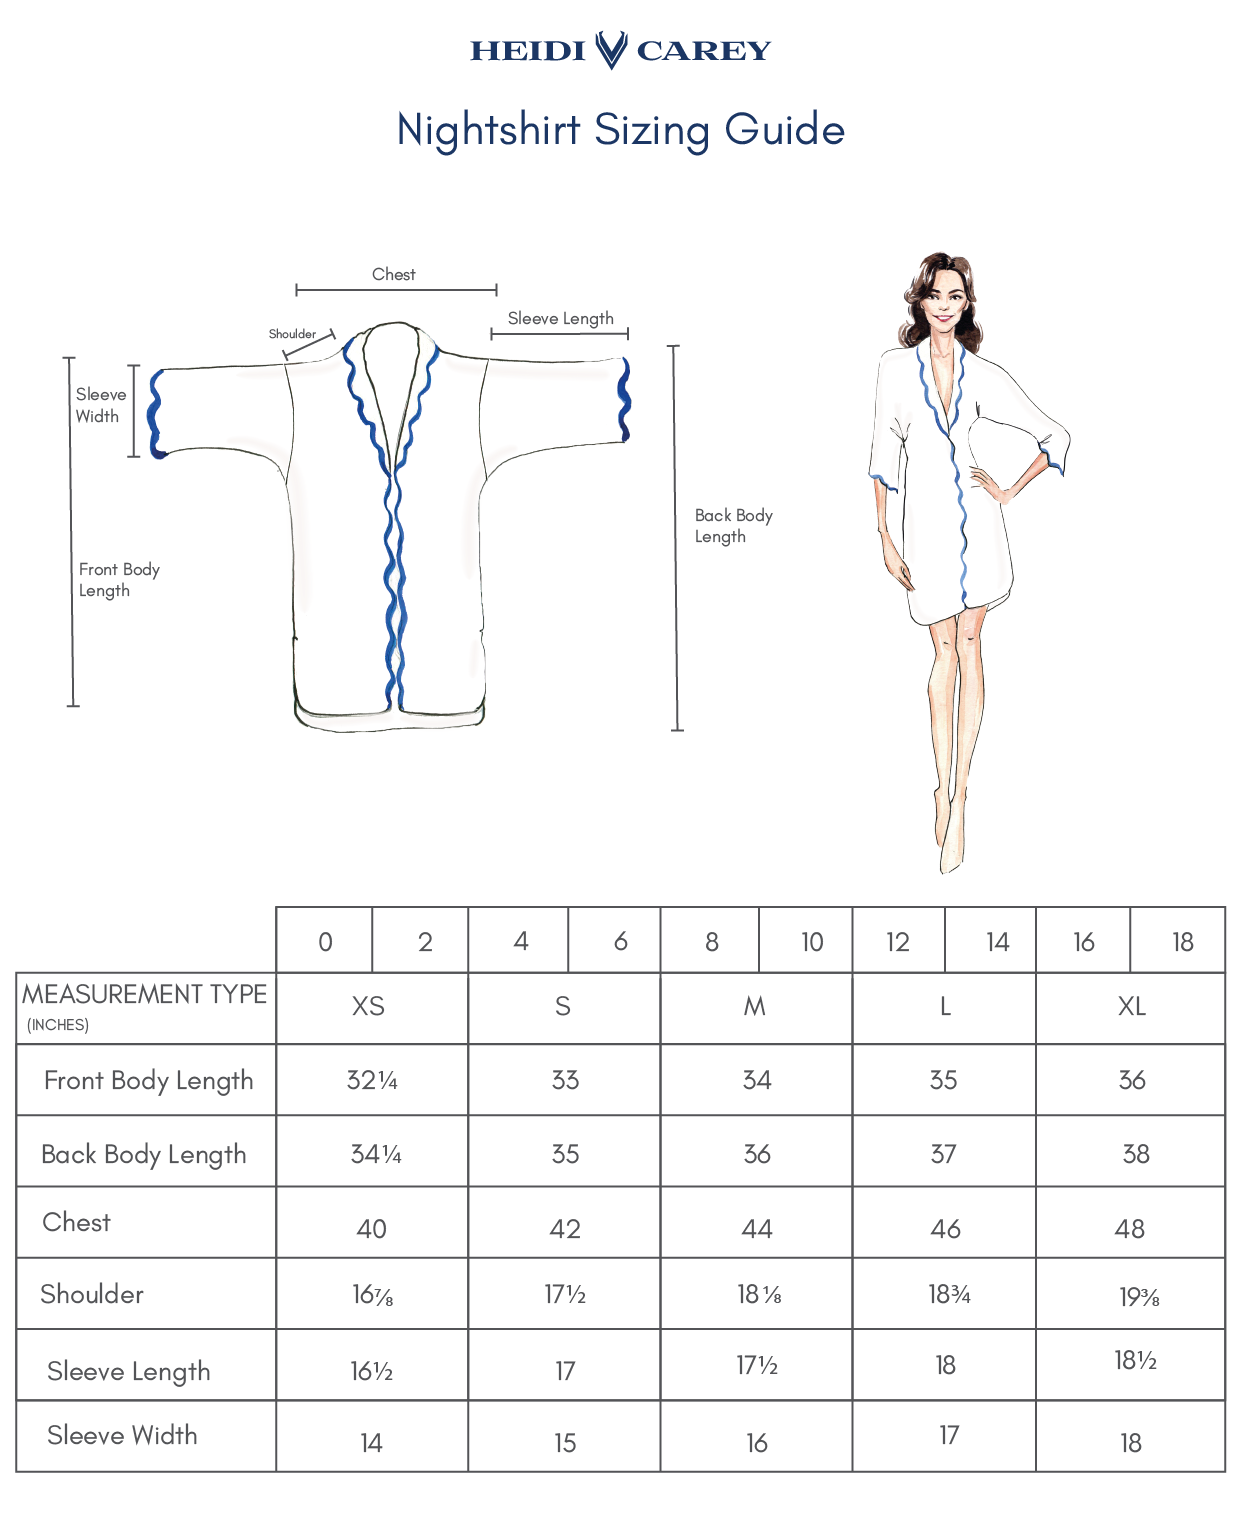 Nightshirt Sizing Guide